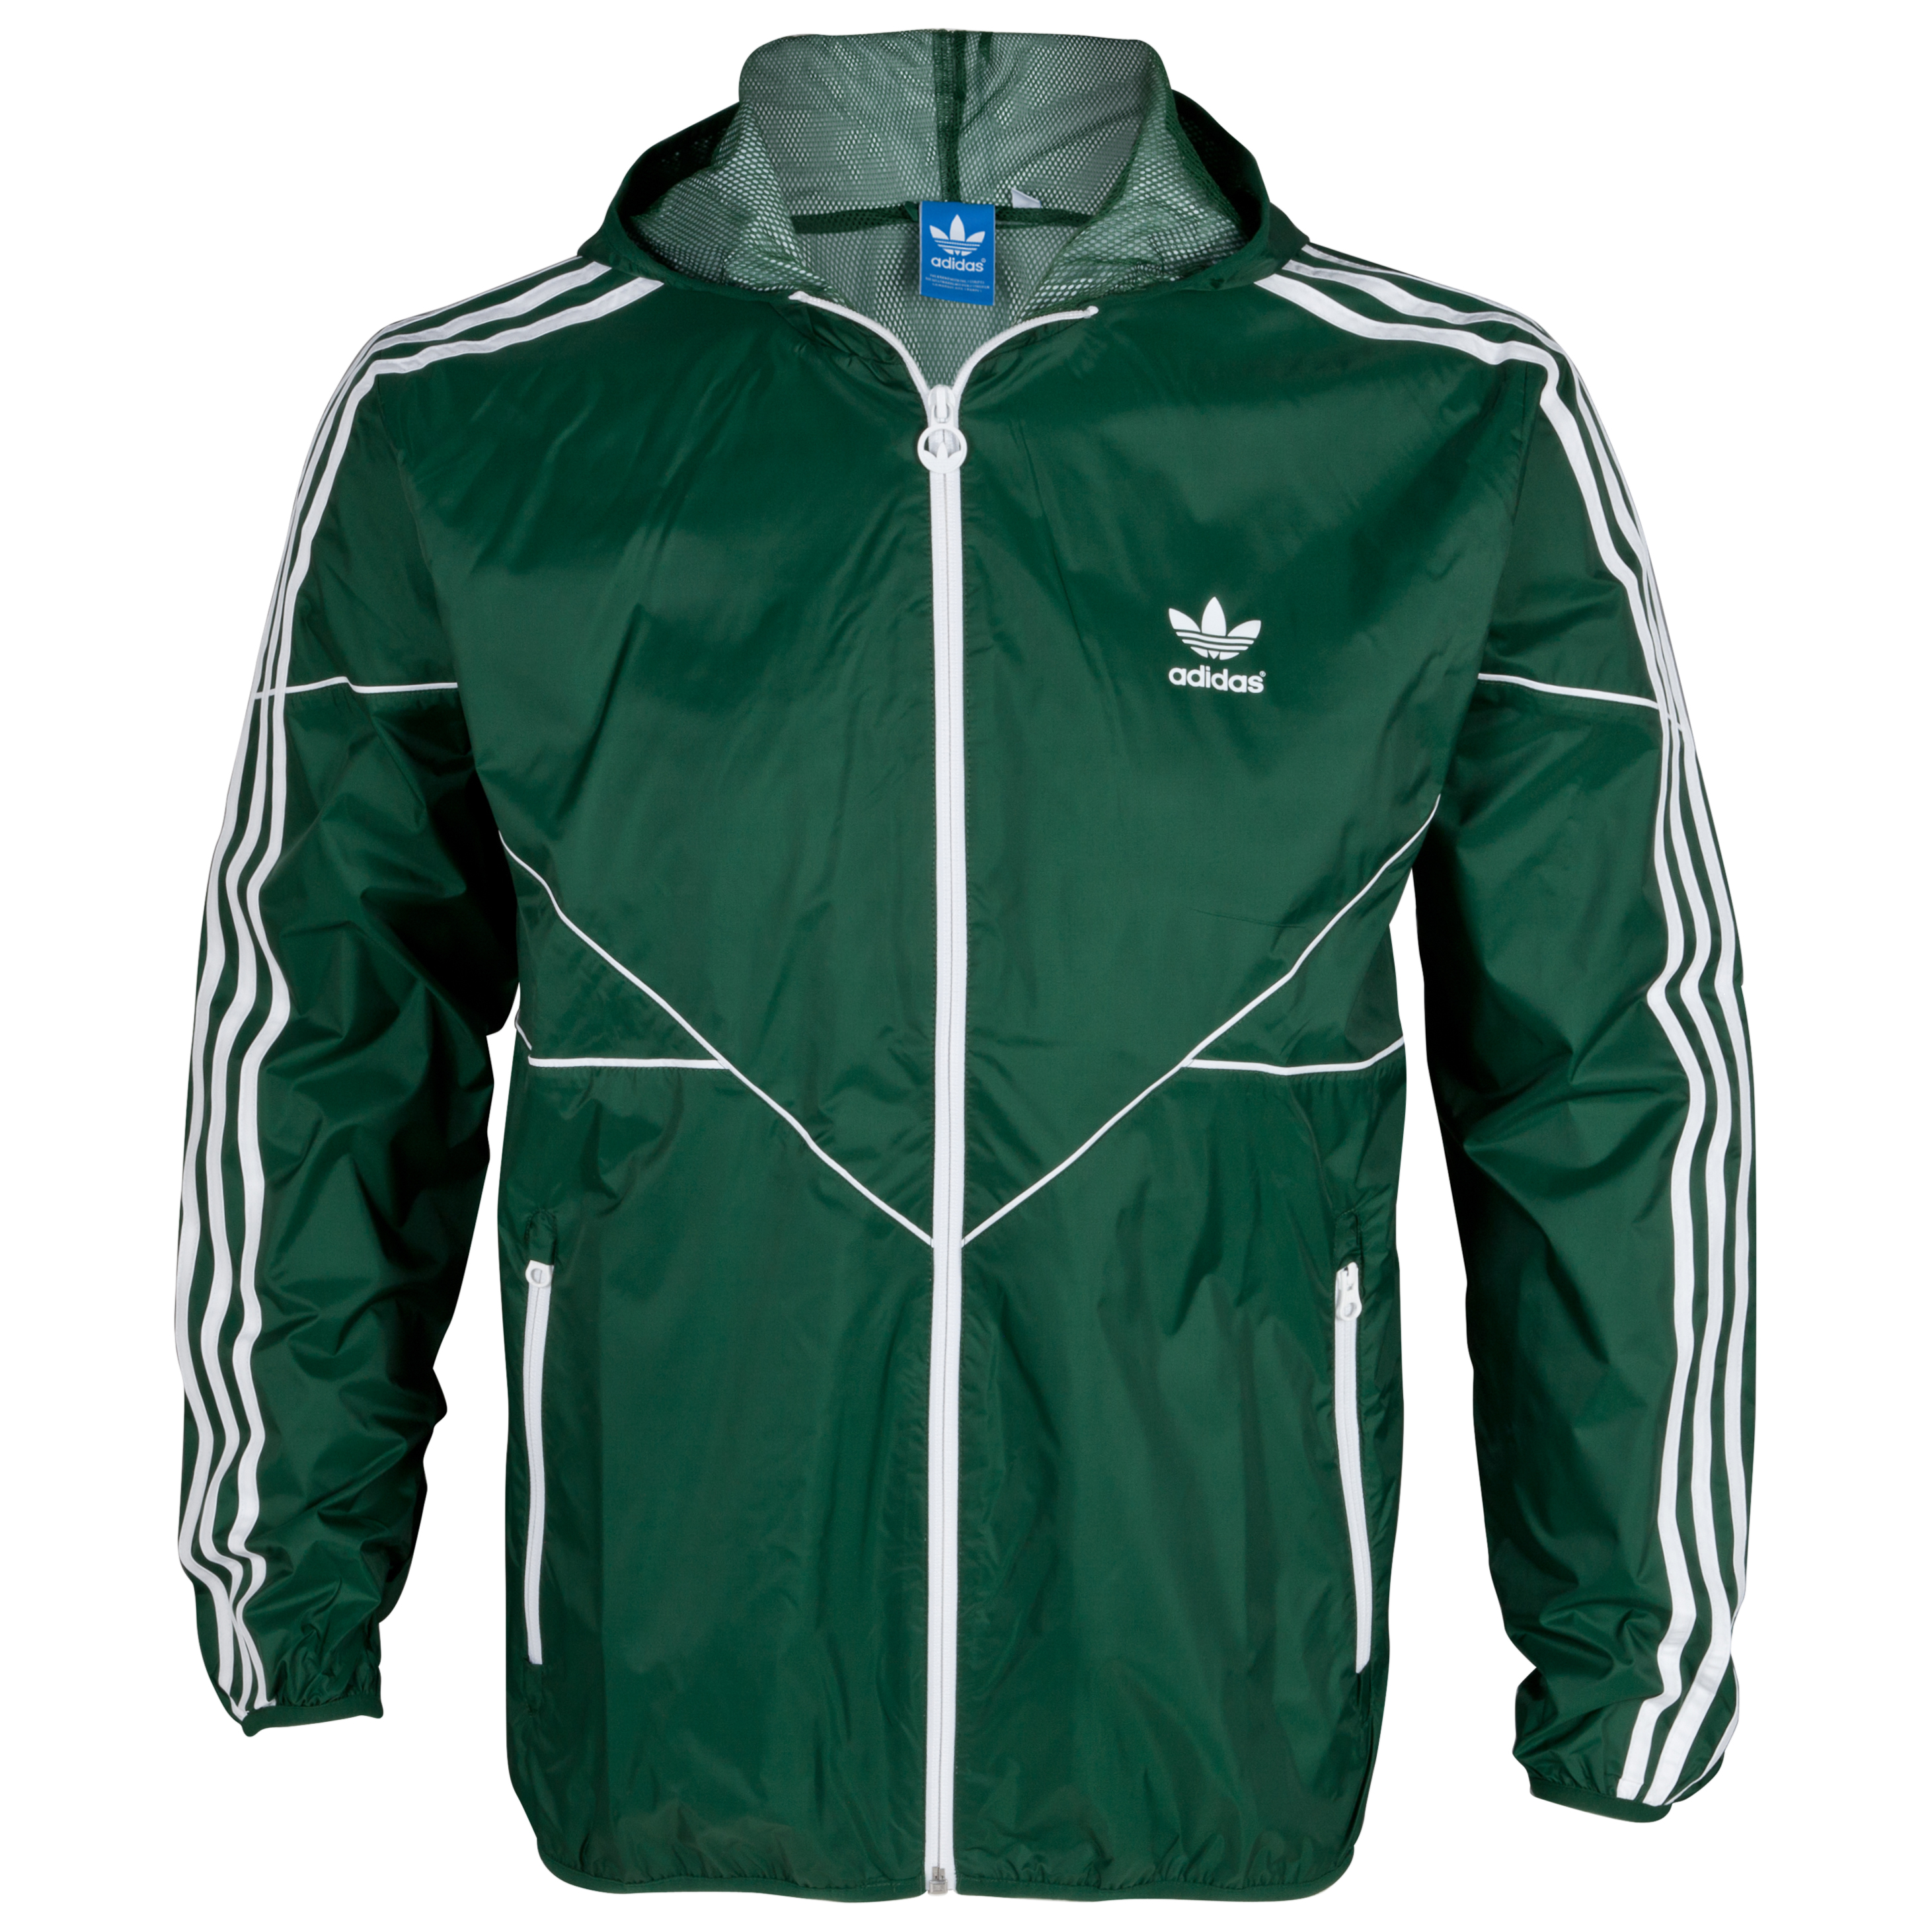 Originals Colorado Windbreaker - Dark Green